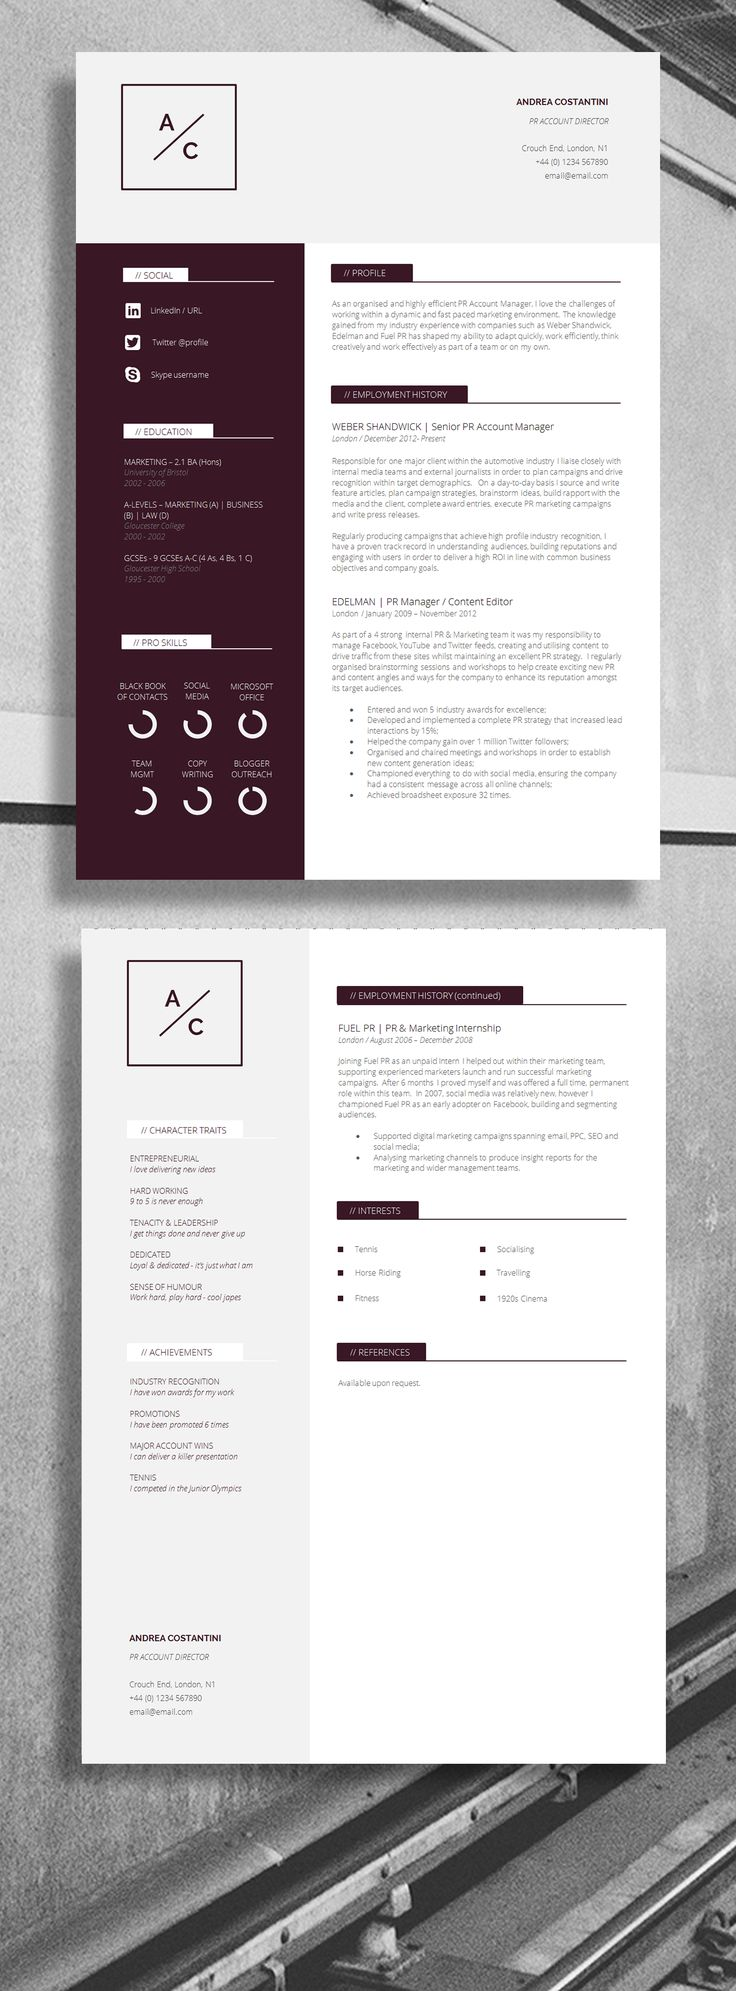 Best 25+ Resume Layout Ideas On Pinterest | Resume Ideas, Layout Cv And  Creative Cv Template  Layout For A Resume